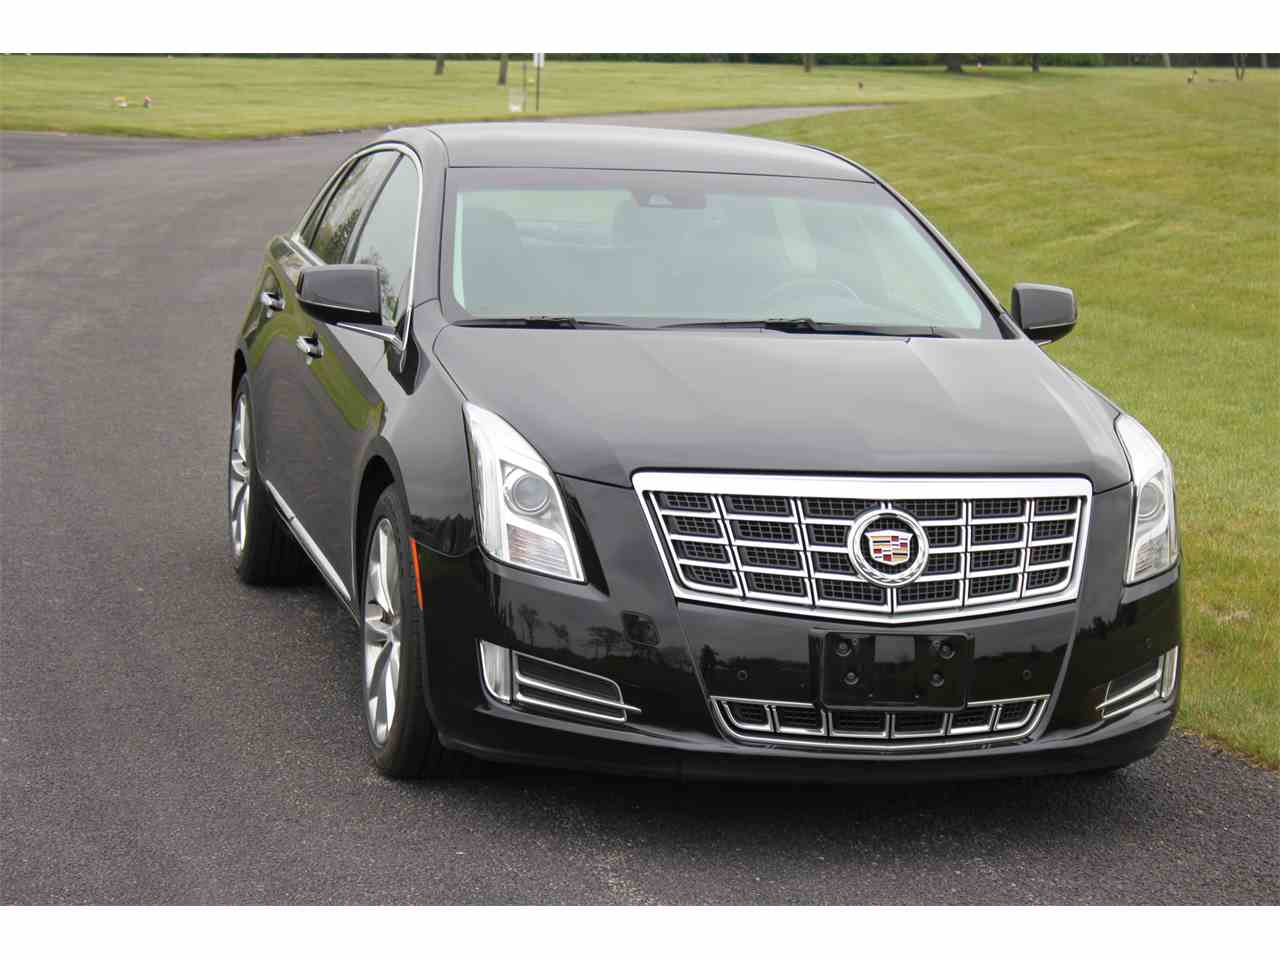 2013 Cadillac XTS for Sale - CC-986764